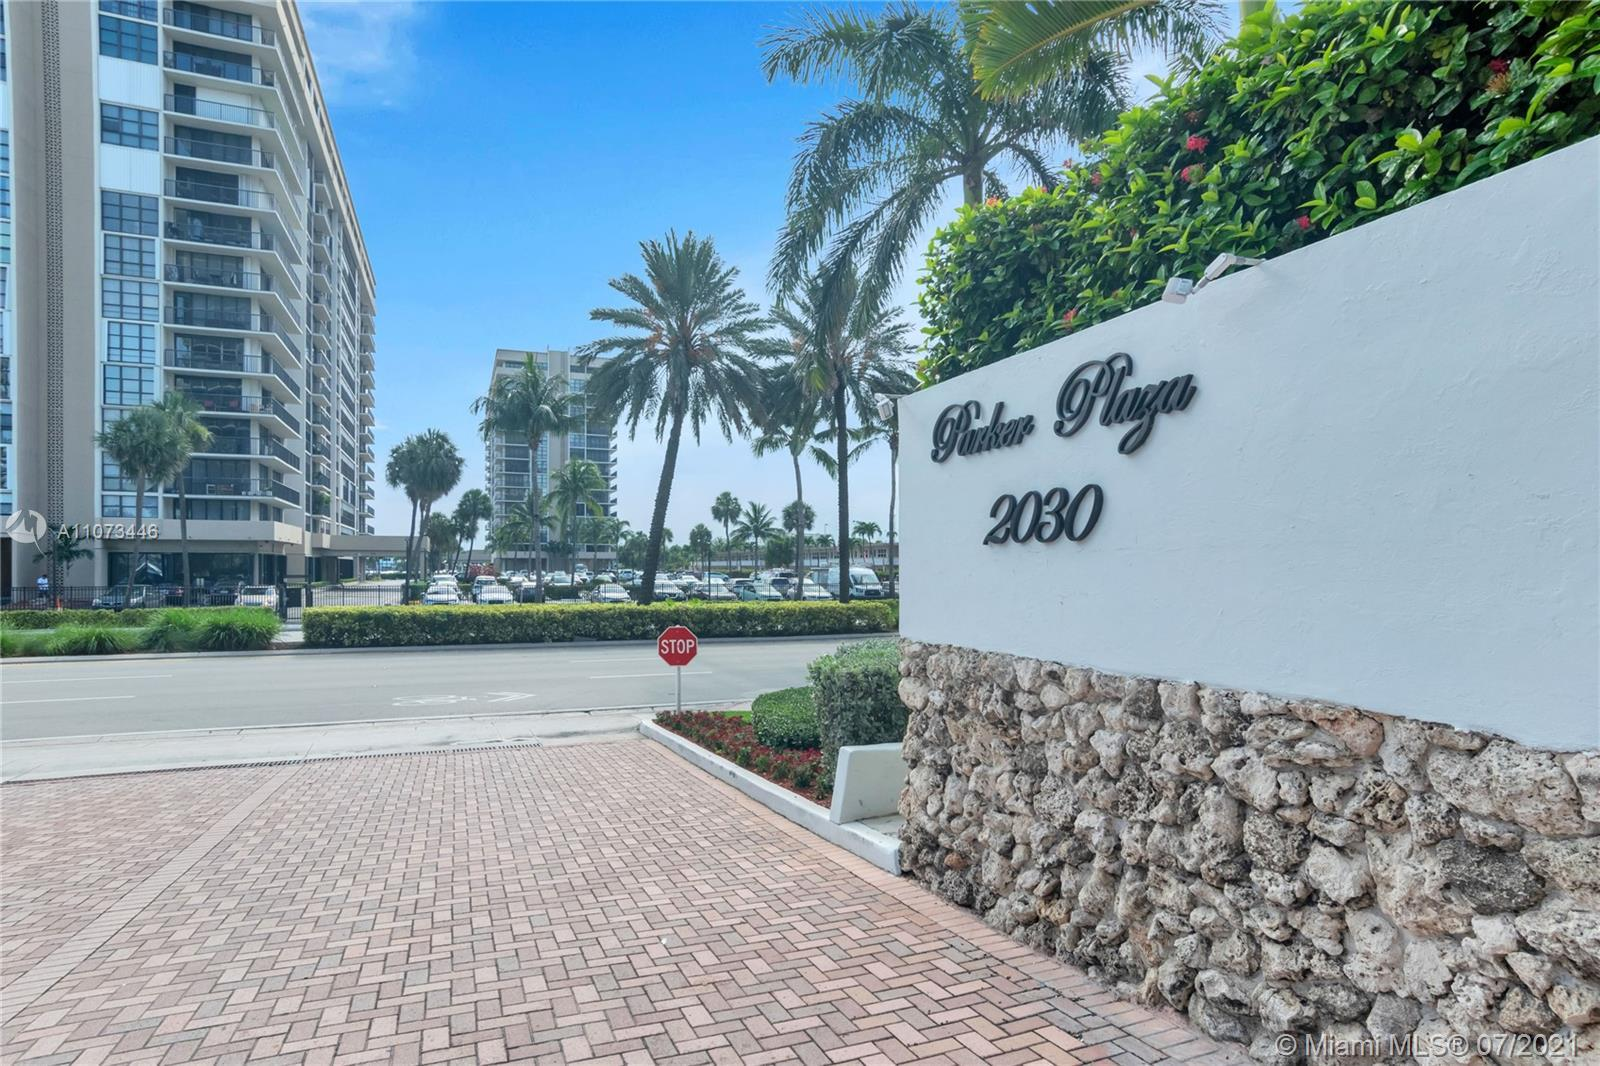 SPACIOUS 2/2 , UPGRADED UNIT IN A LUXURIOUS OCEANFRONT CONDO. LARGE MASTER BEDROOM WITH 2 WALKING C